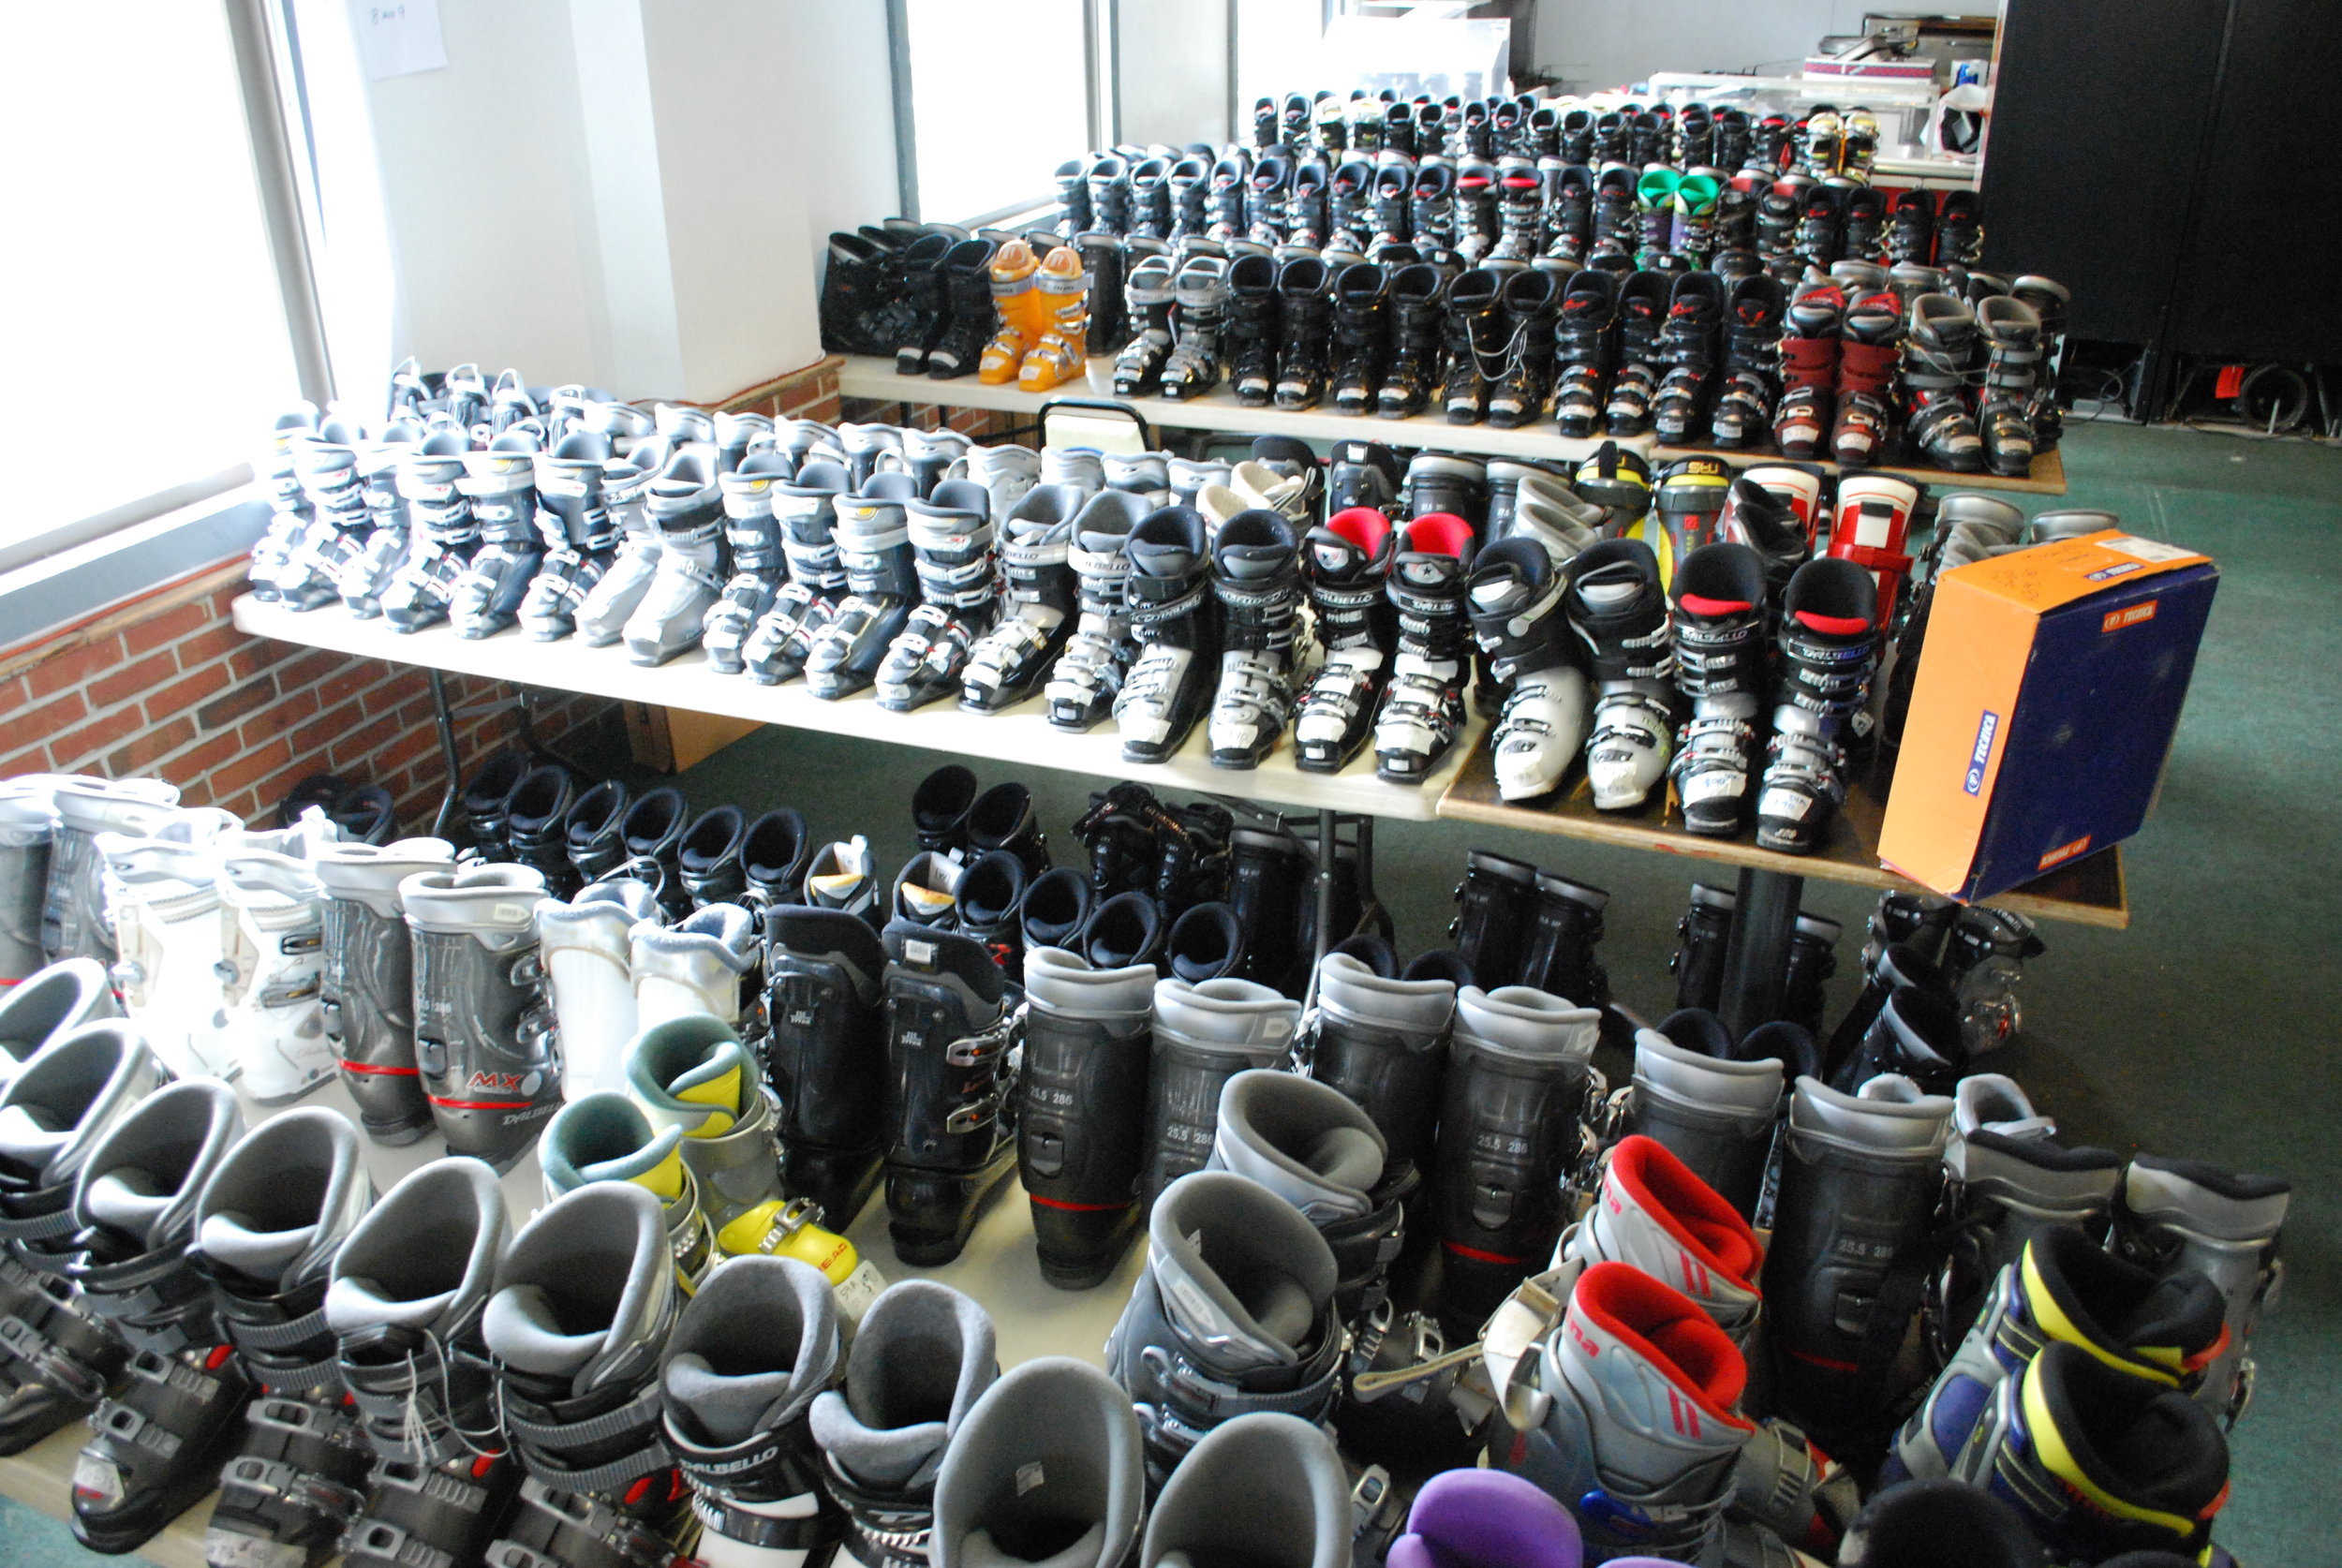 Items must be clean and in working order with no broken or missing pieces. - Ski boots should be buckled shut, snowboards with working bindings, etc.